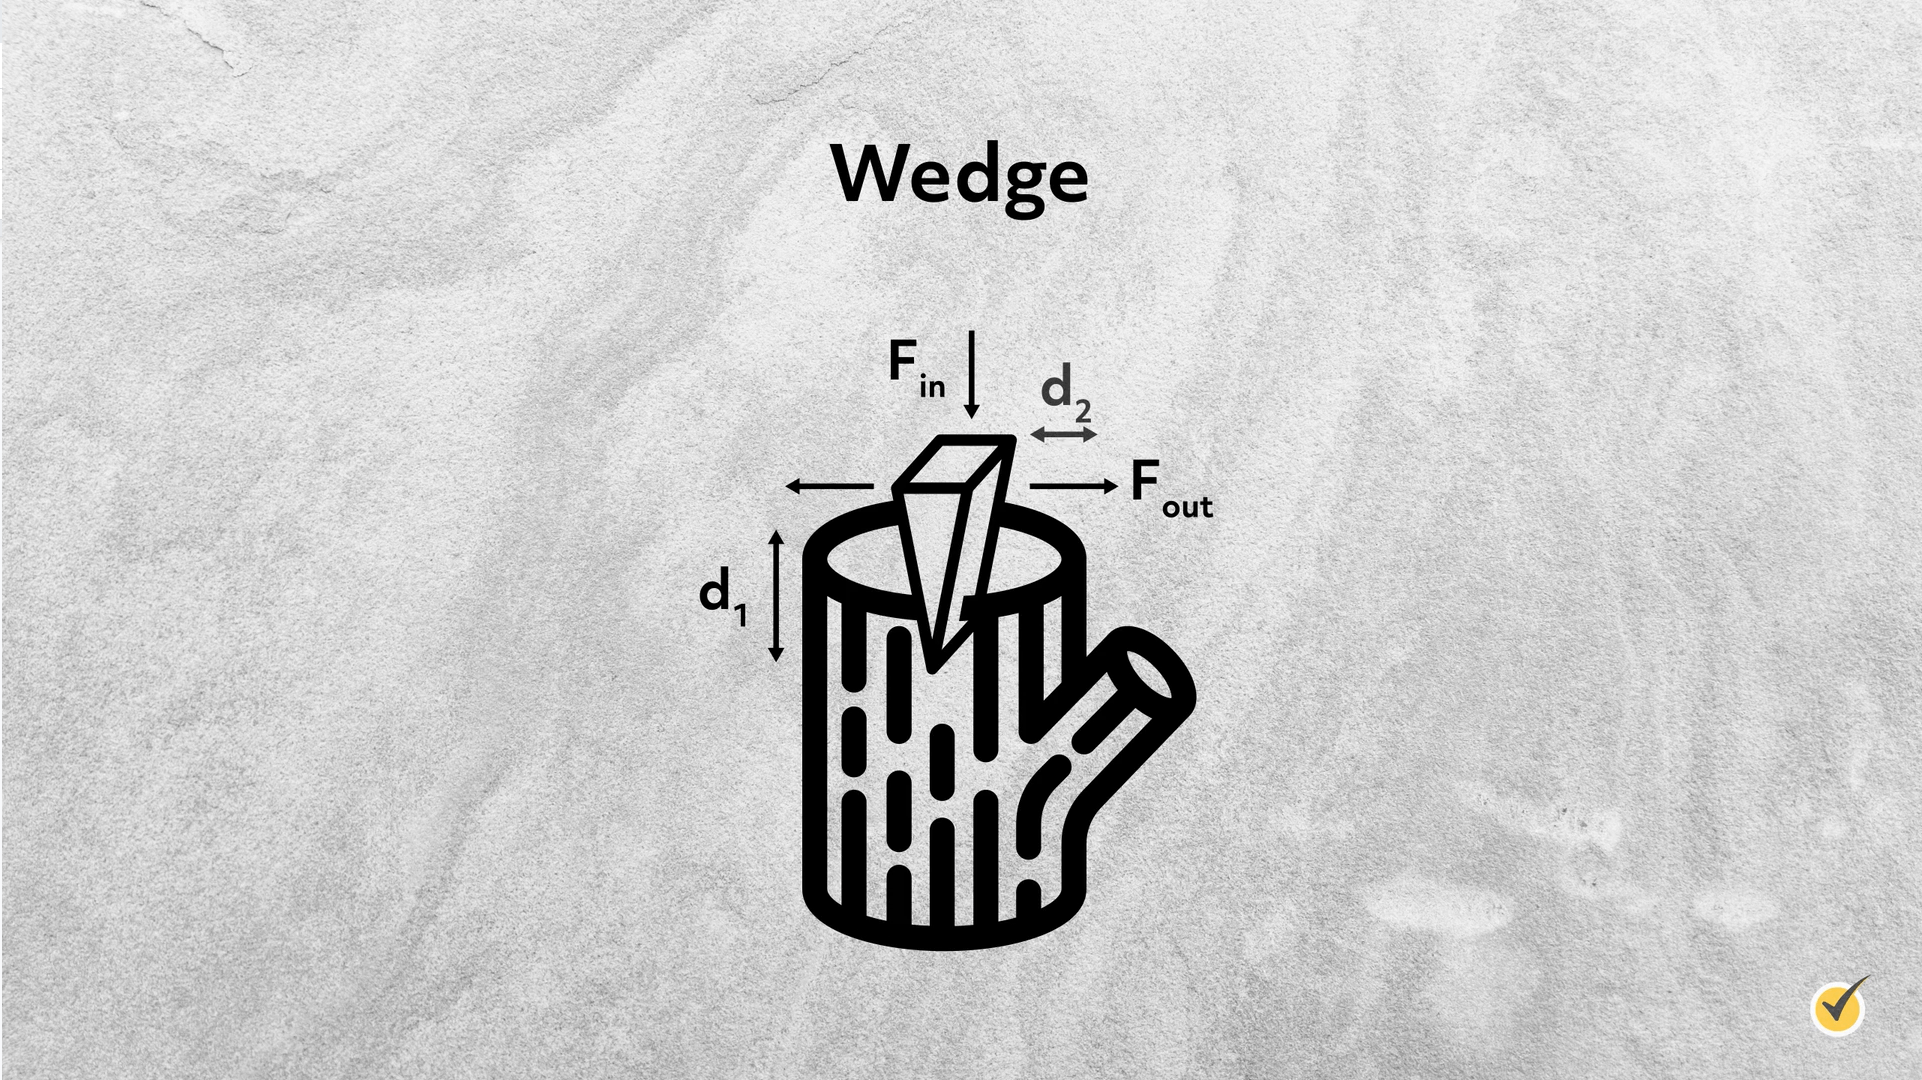 Image of a wedge, which is a simple machine.